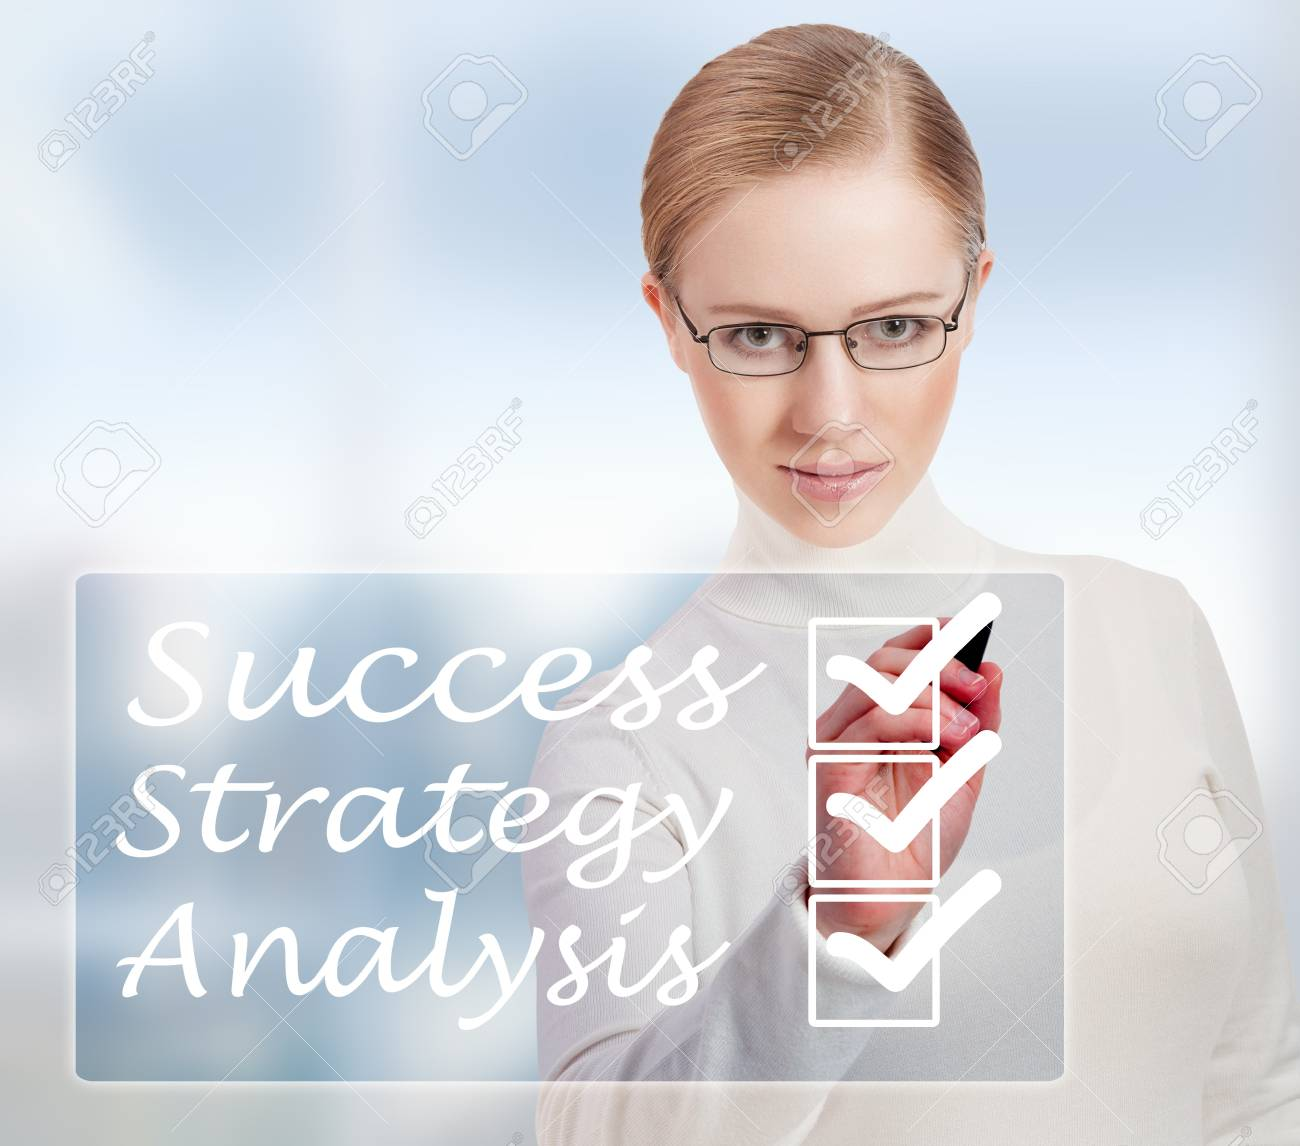 Concept of success and business woman in modern blue background Stock Photo - 16301966